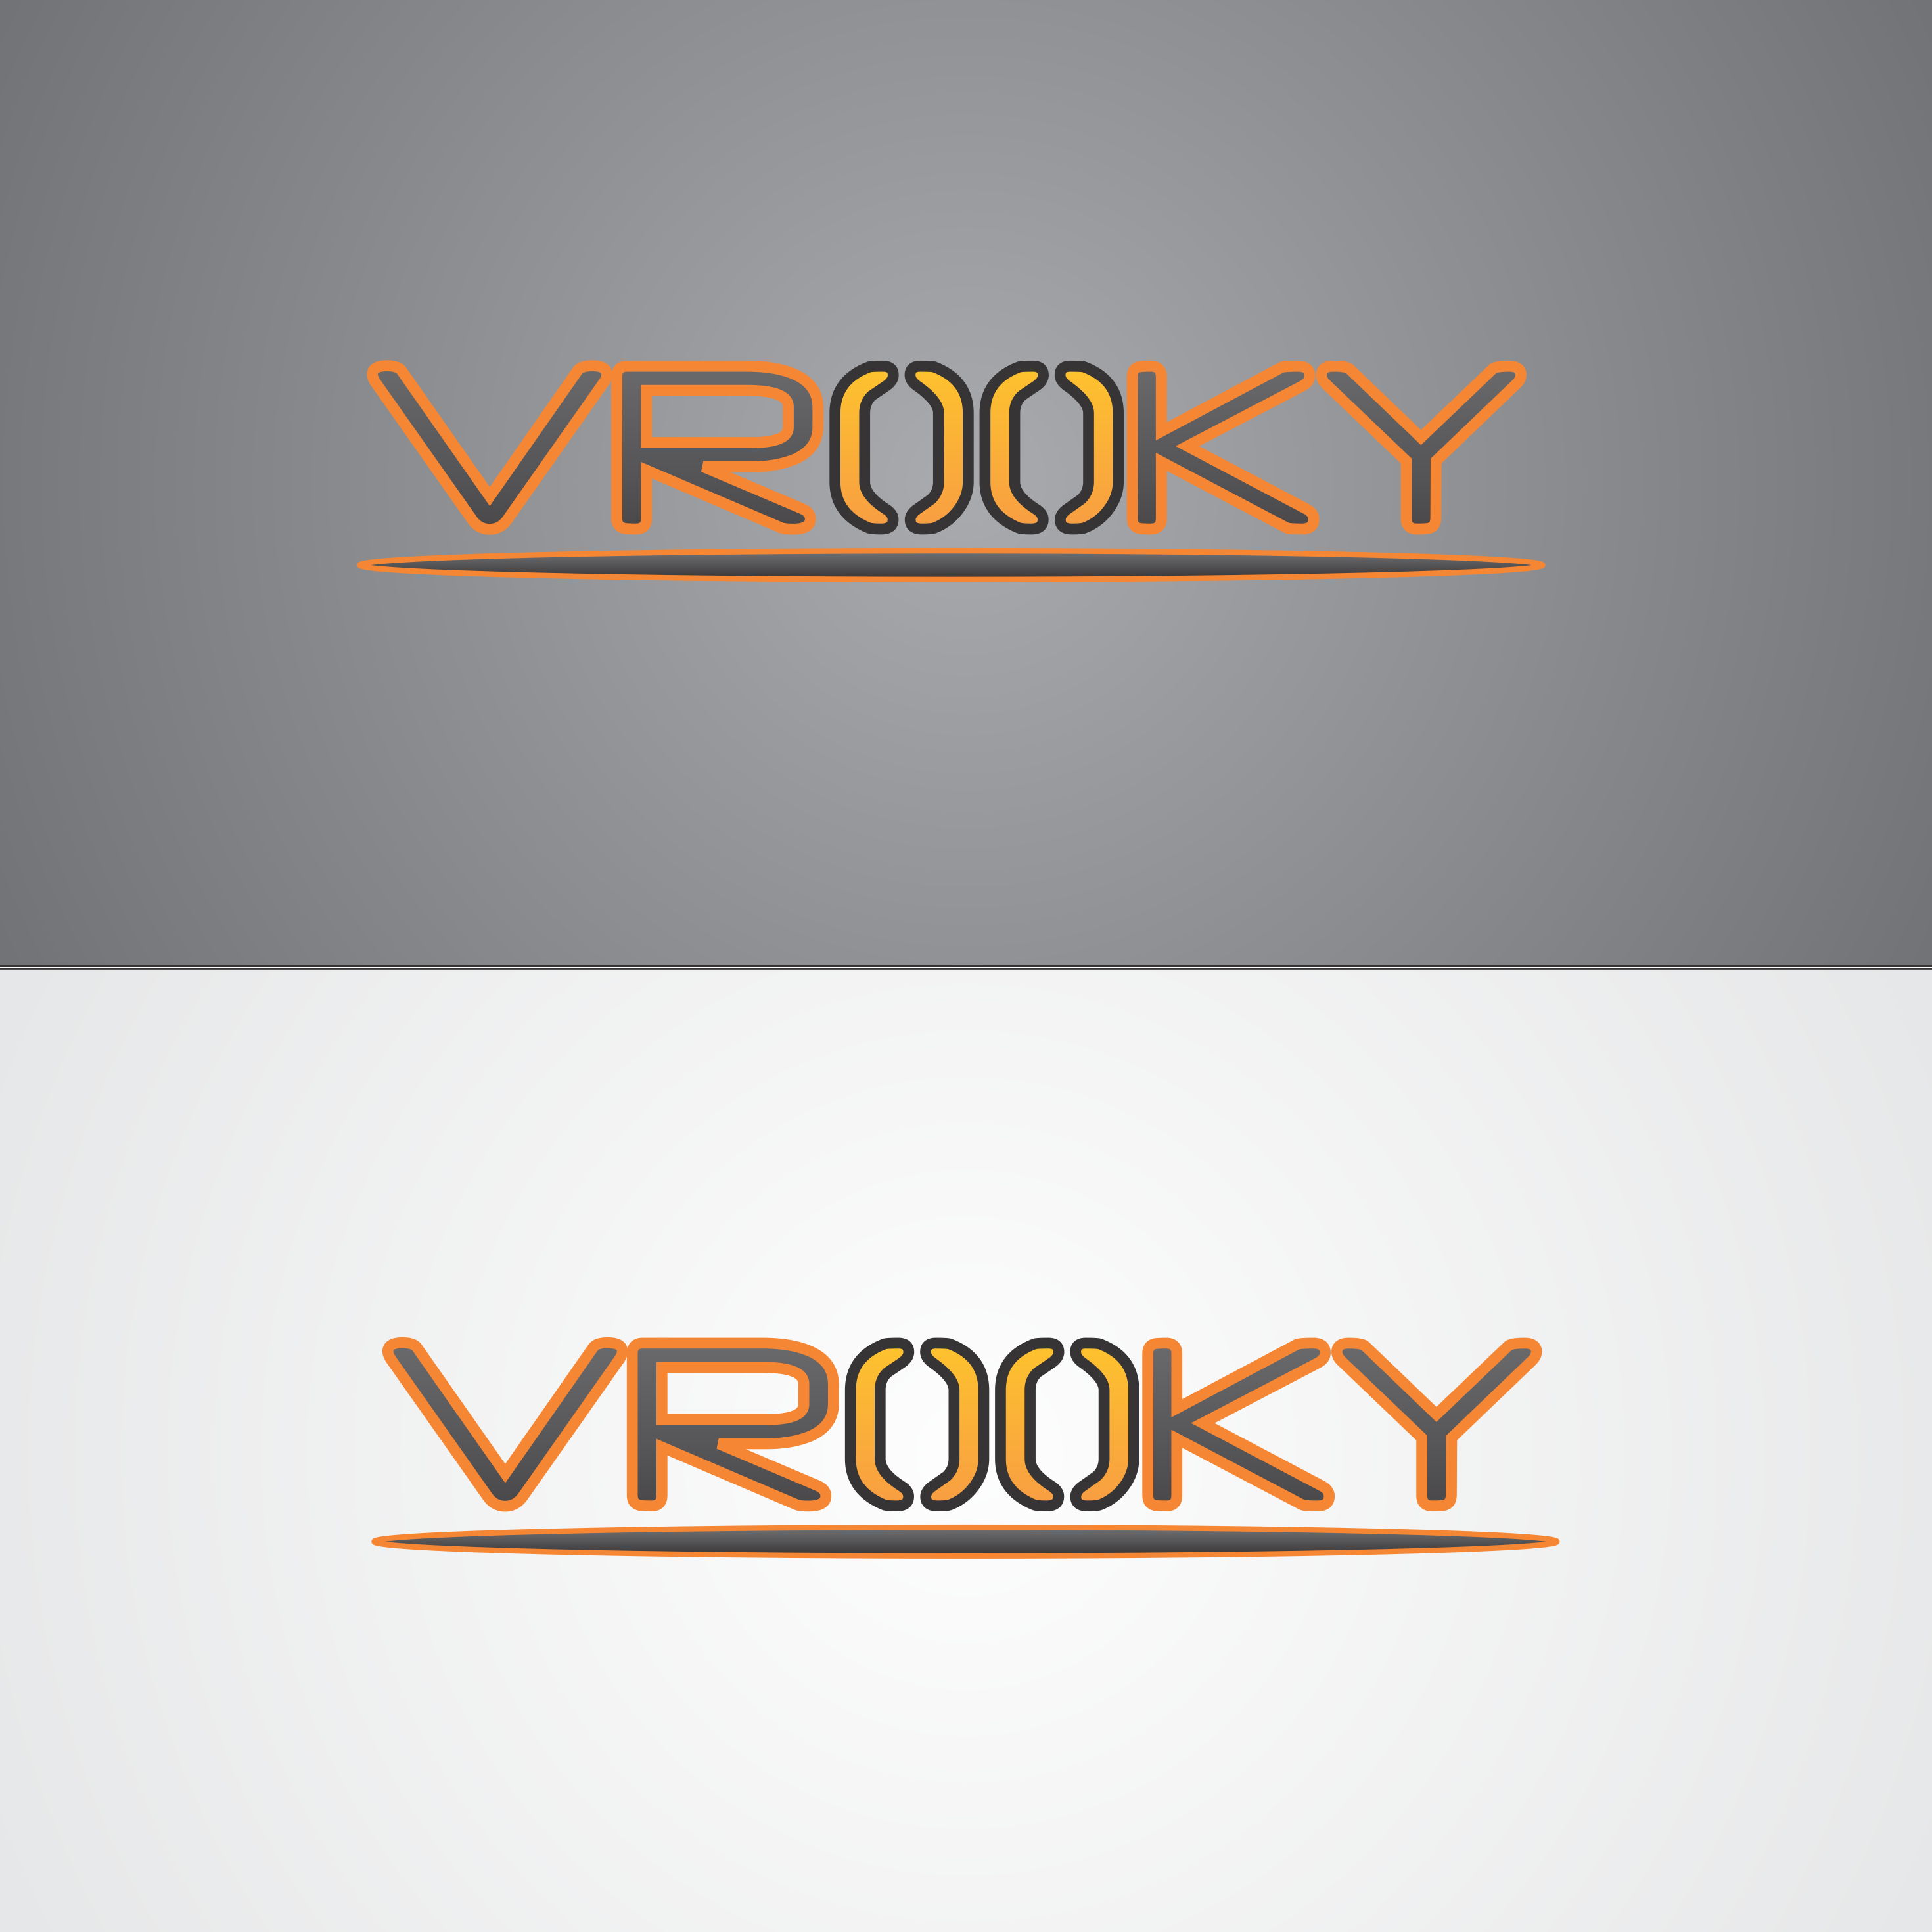 Logo Design by robbiemack - Entry No. 41 in the Logo Design Contest New Logo Design for Vrooky.